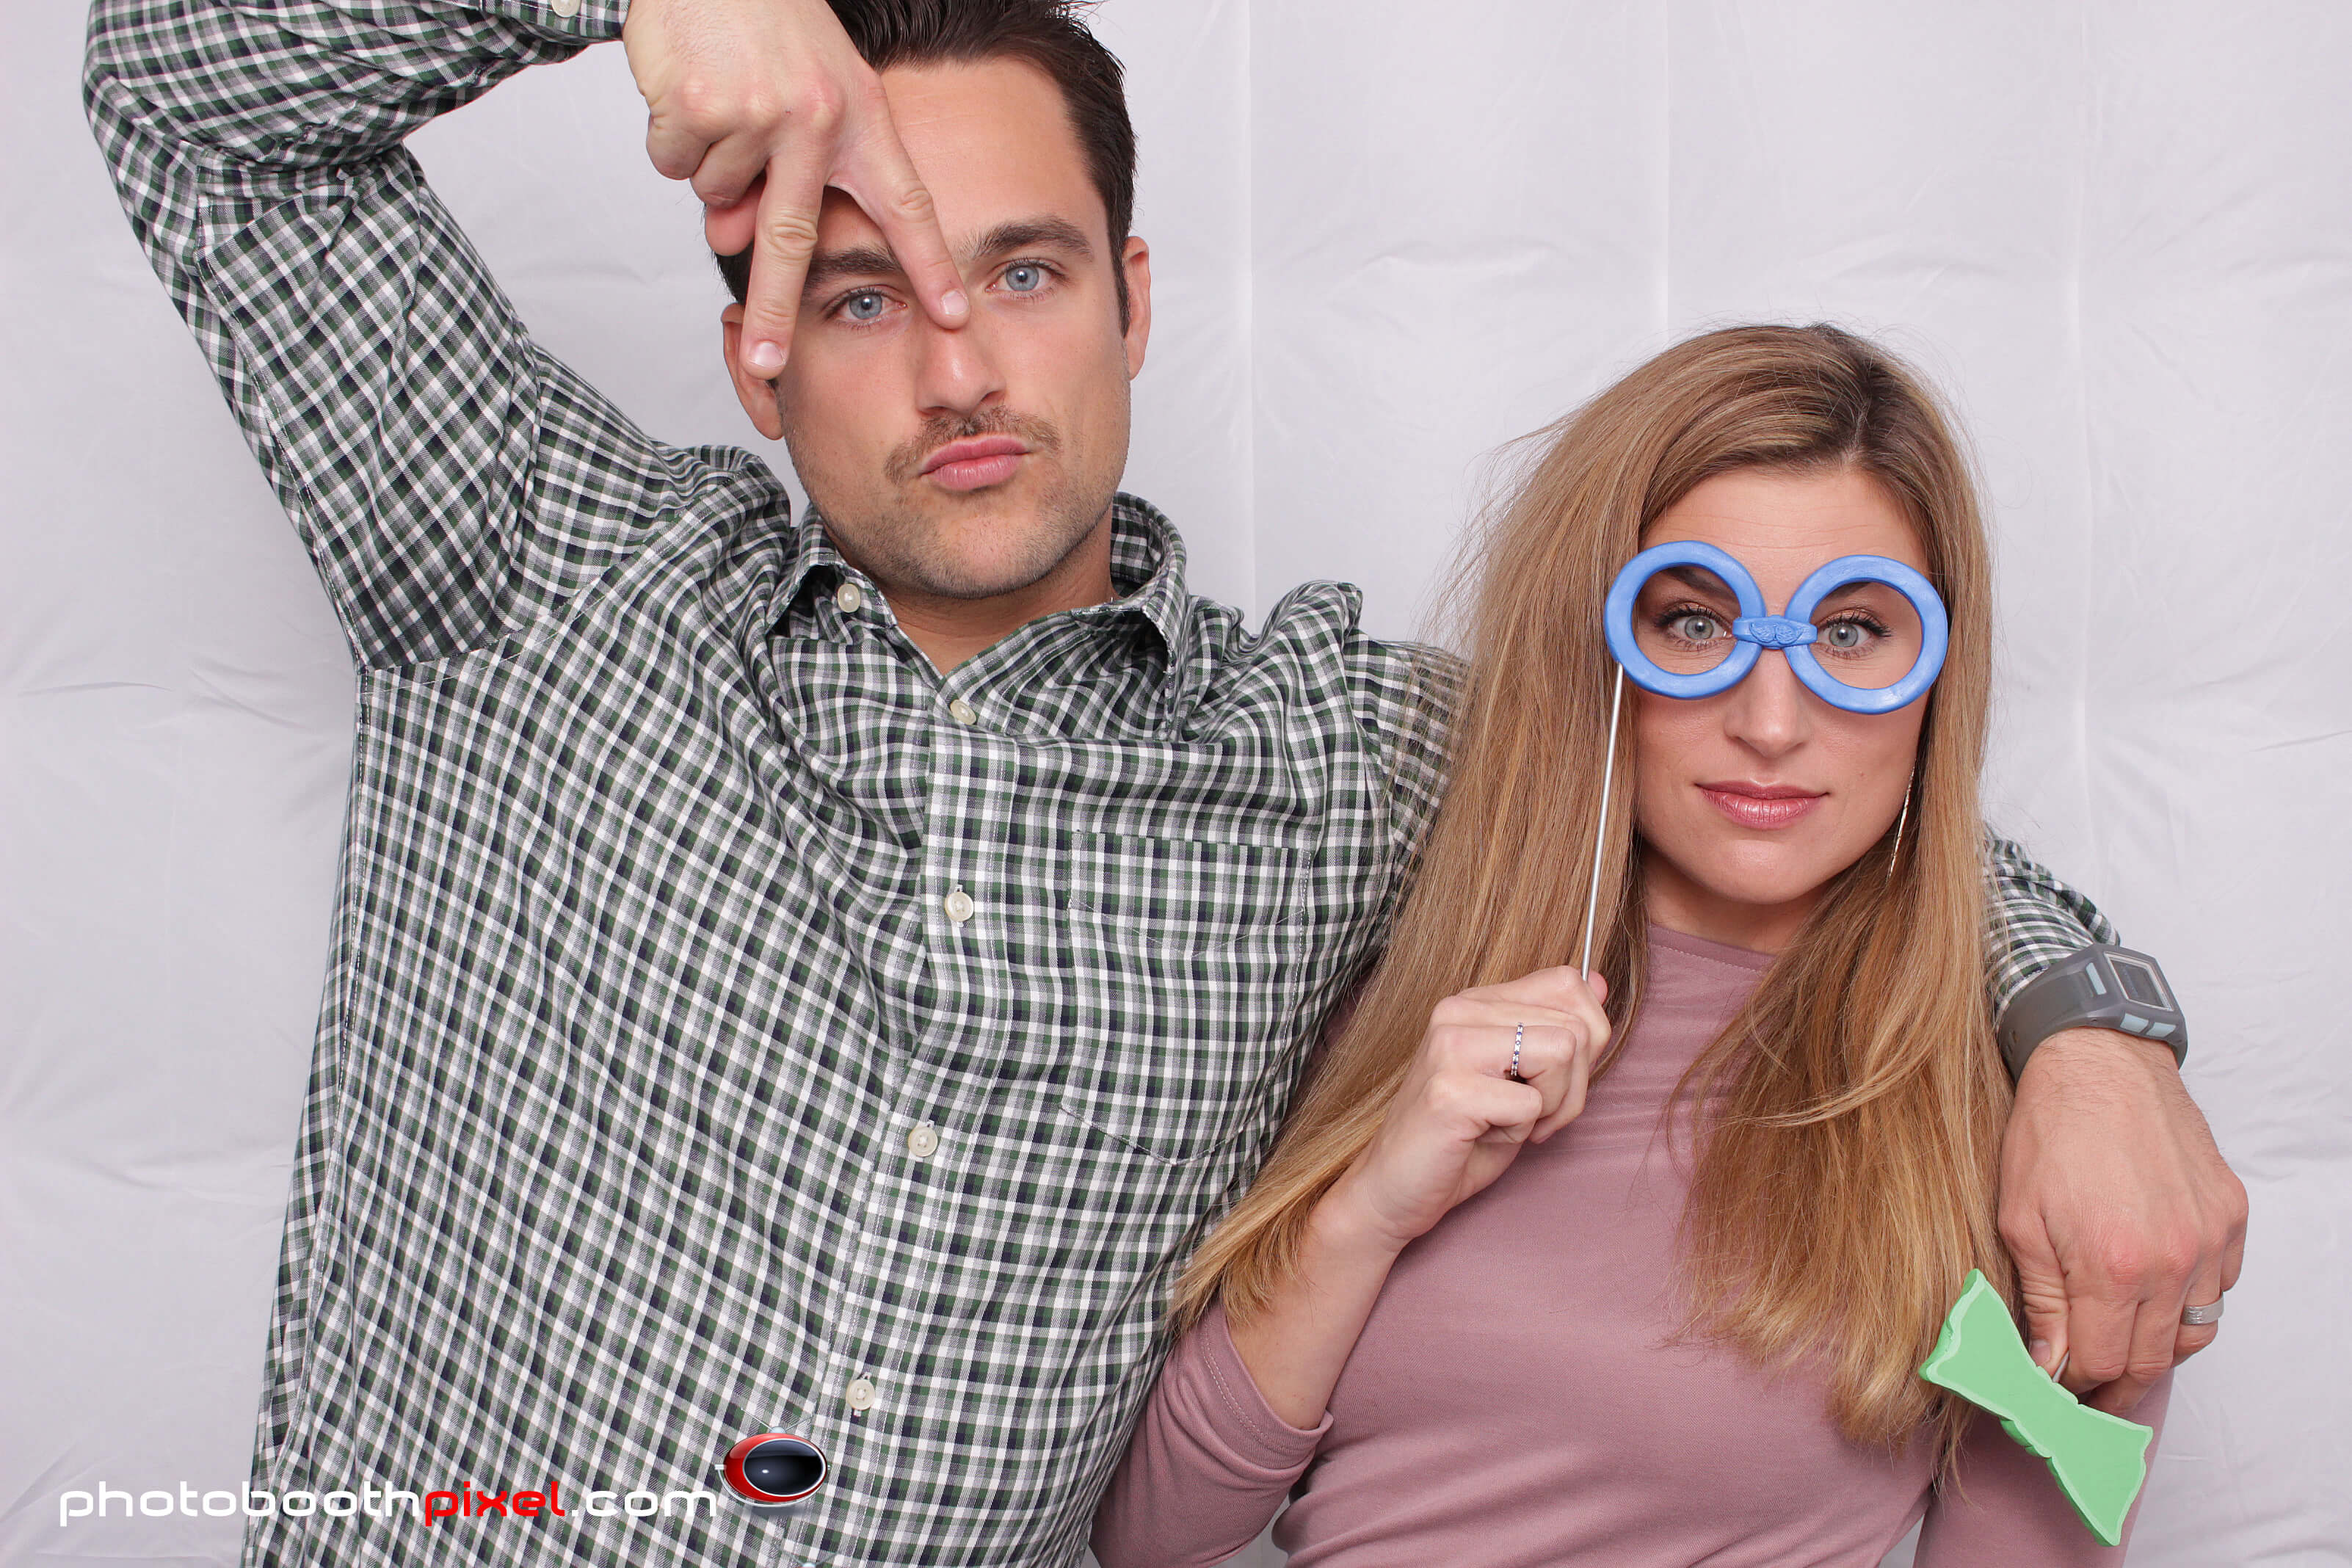 Sterling photo booth rental Photobooth Cardboard Cutouts - Oh Happy Day!